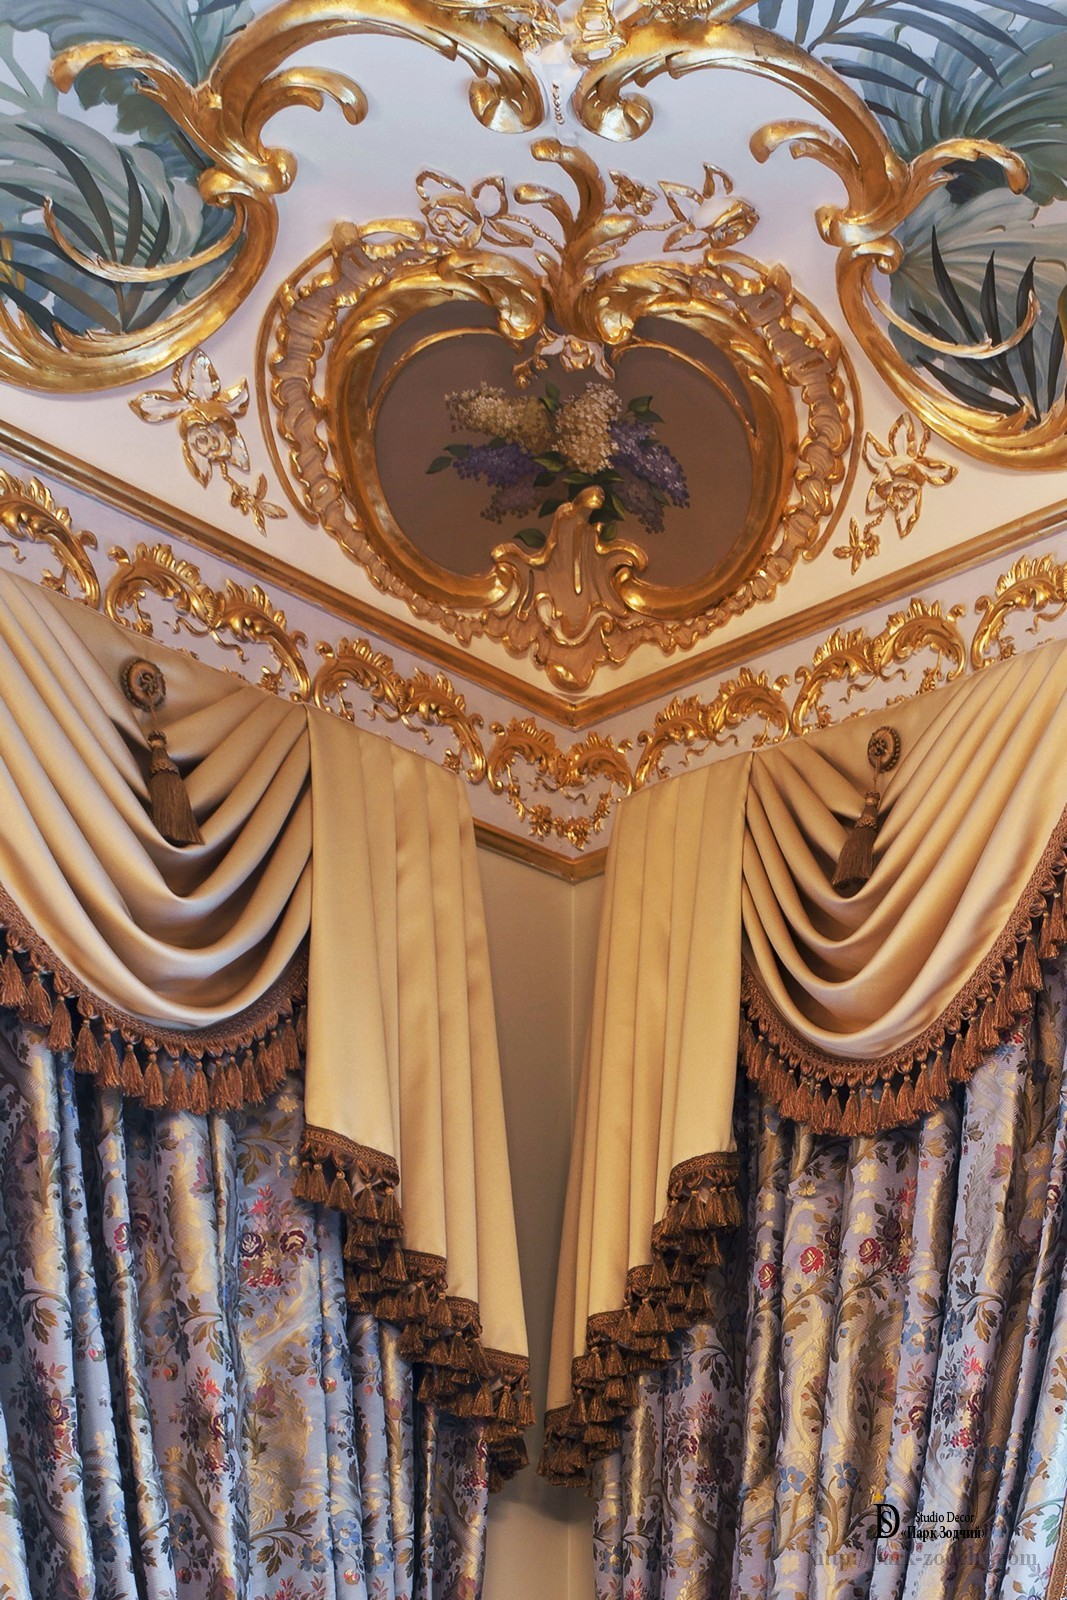 The combination of gilding and painting of the interior